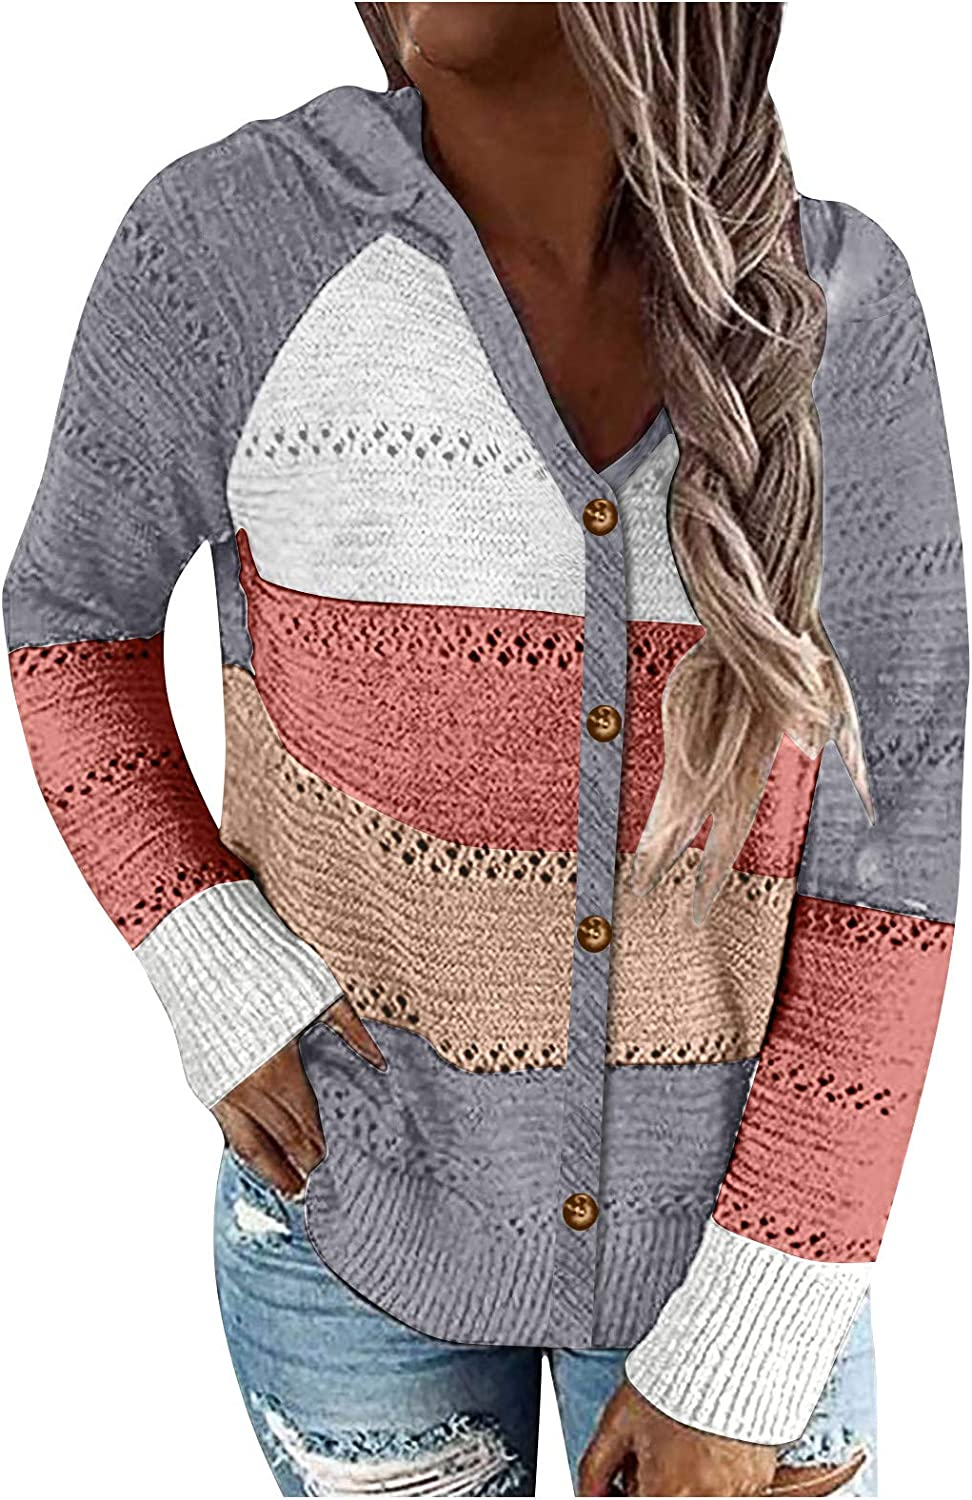 AODONG Sweater for Women,Womens Color Block Hoodies Lightweight Knit Long Sleeve Casual Striped V Neck Pullovers Sweatshirts